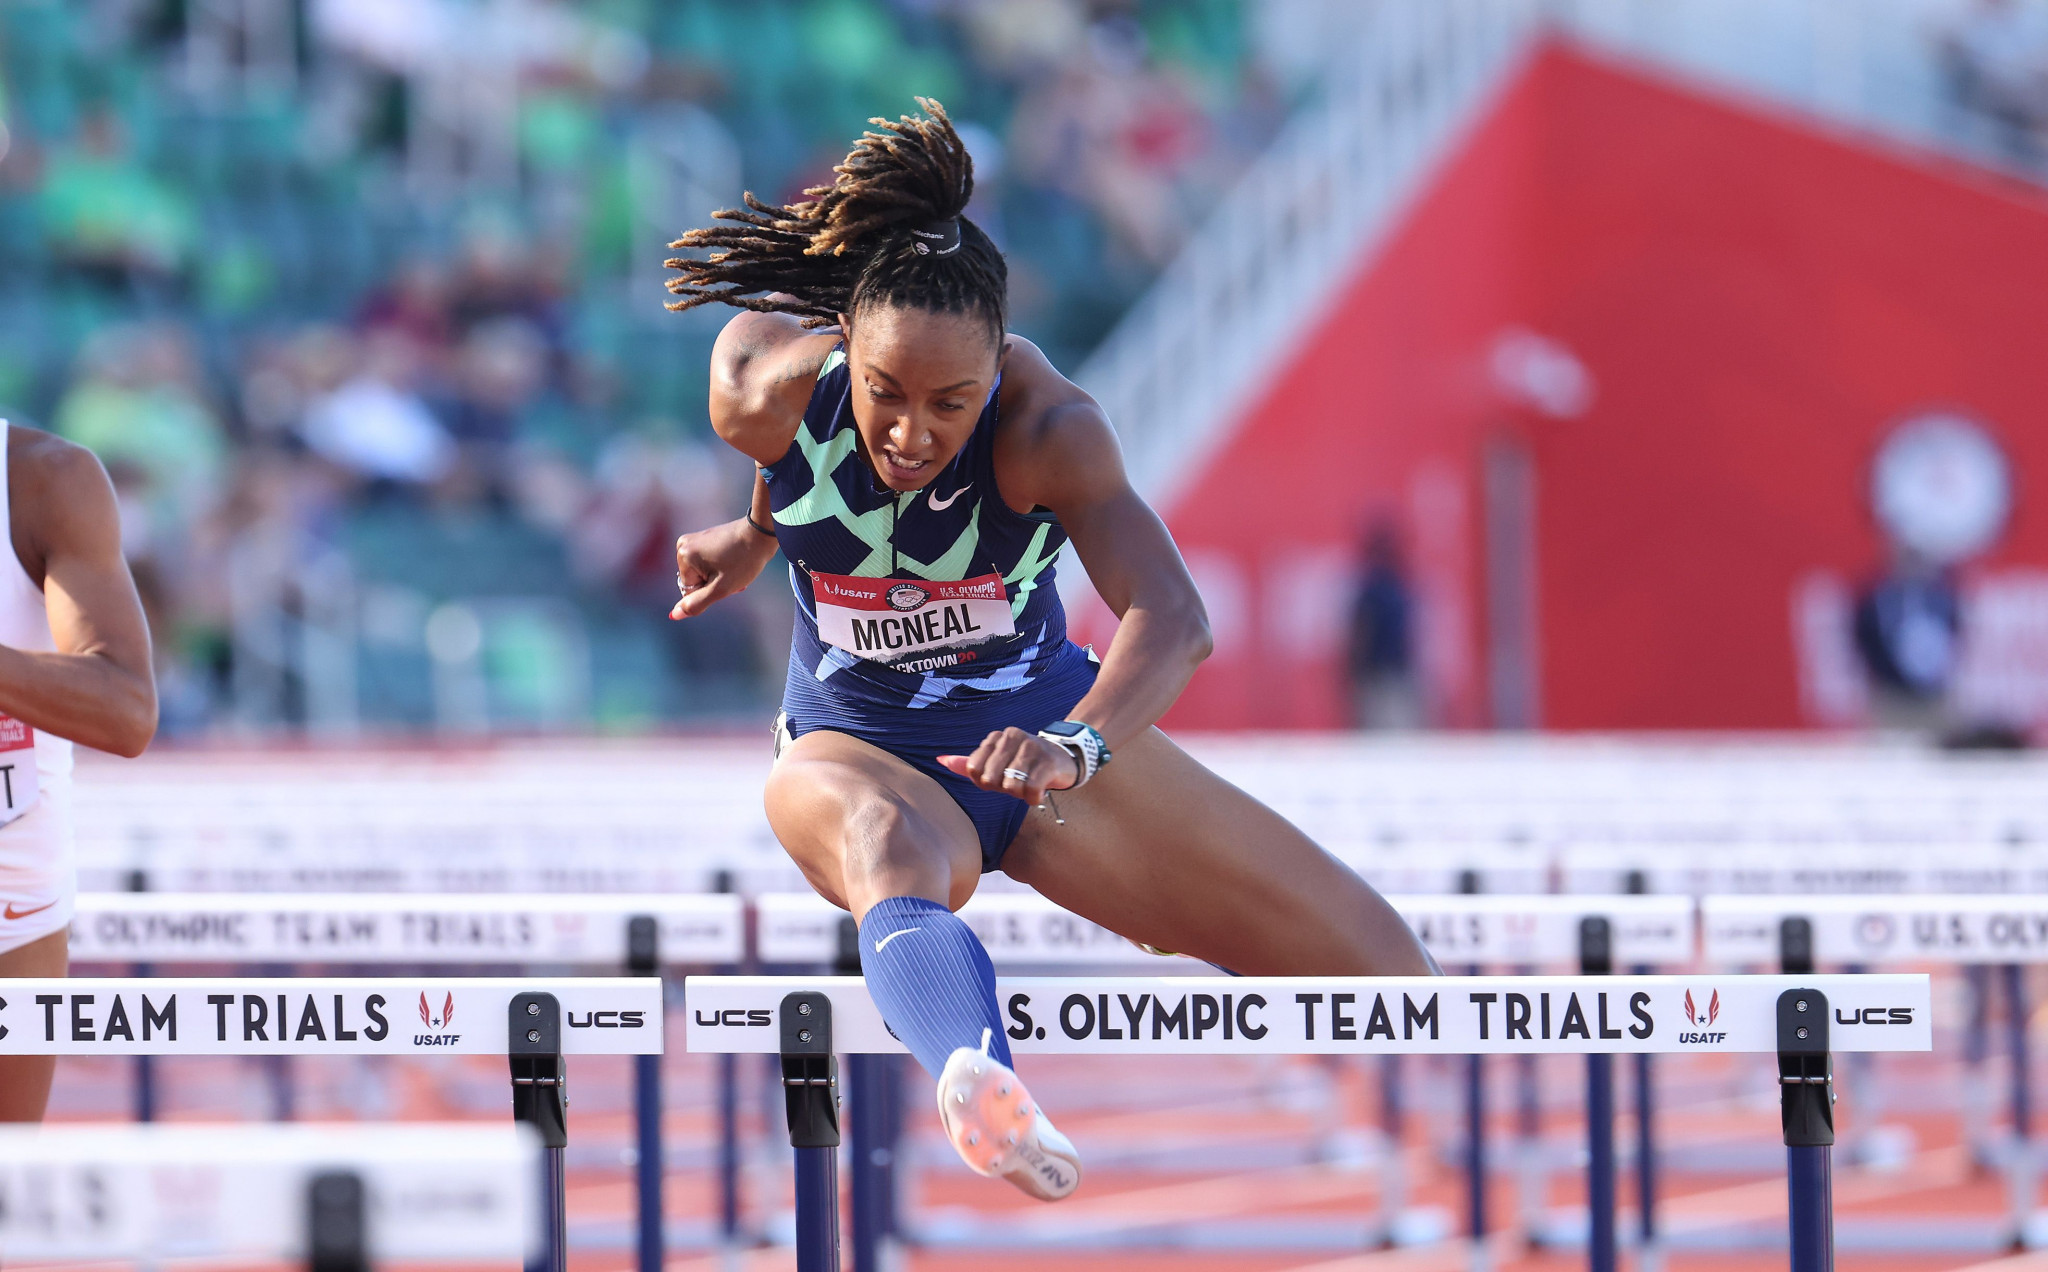 McNeal out of Tokyo 2020 after CAS upholds Olympic champion's five-year ban